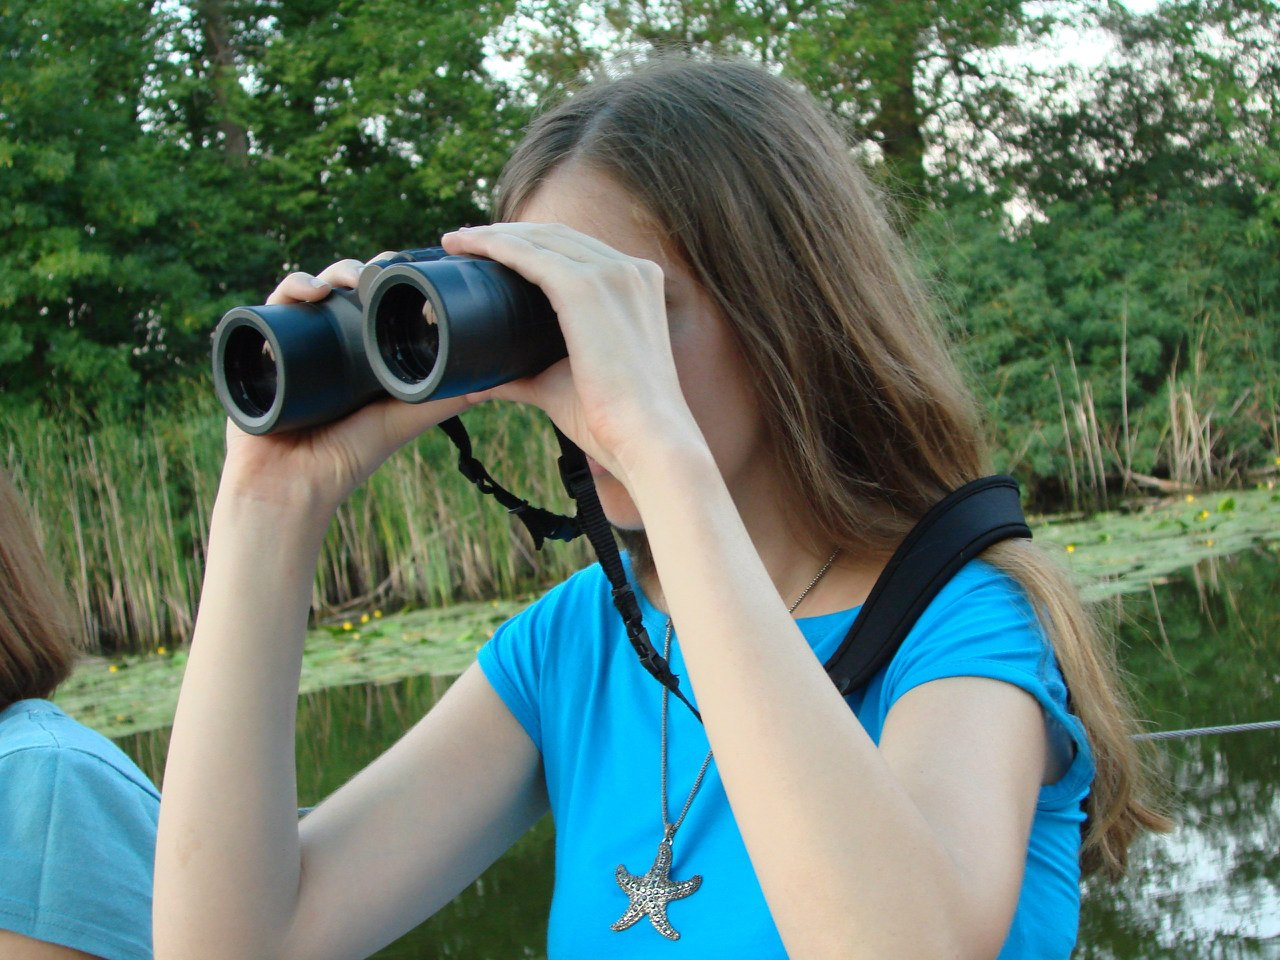 Russian woman using binoculars